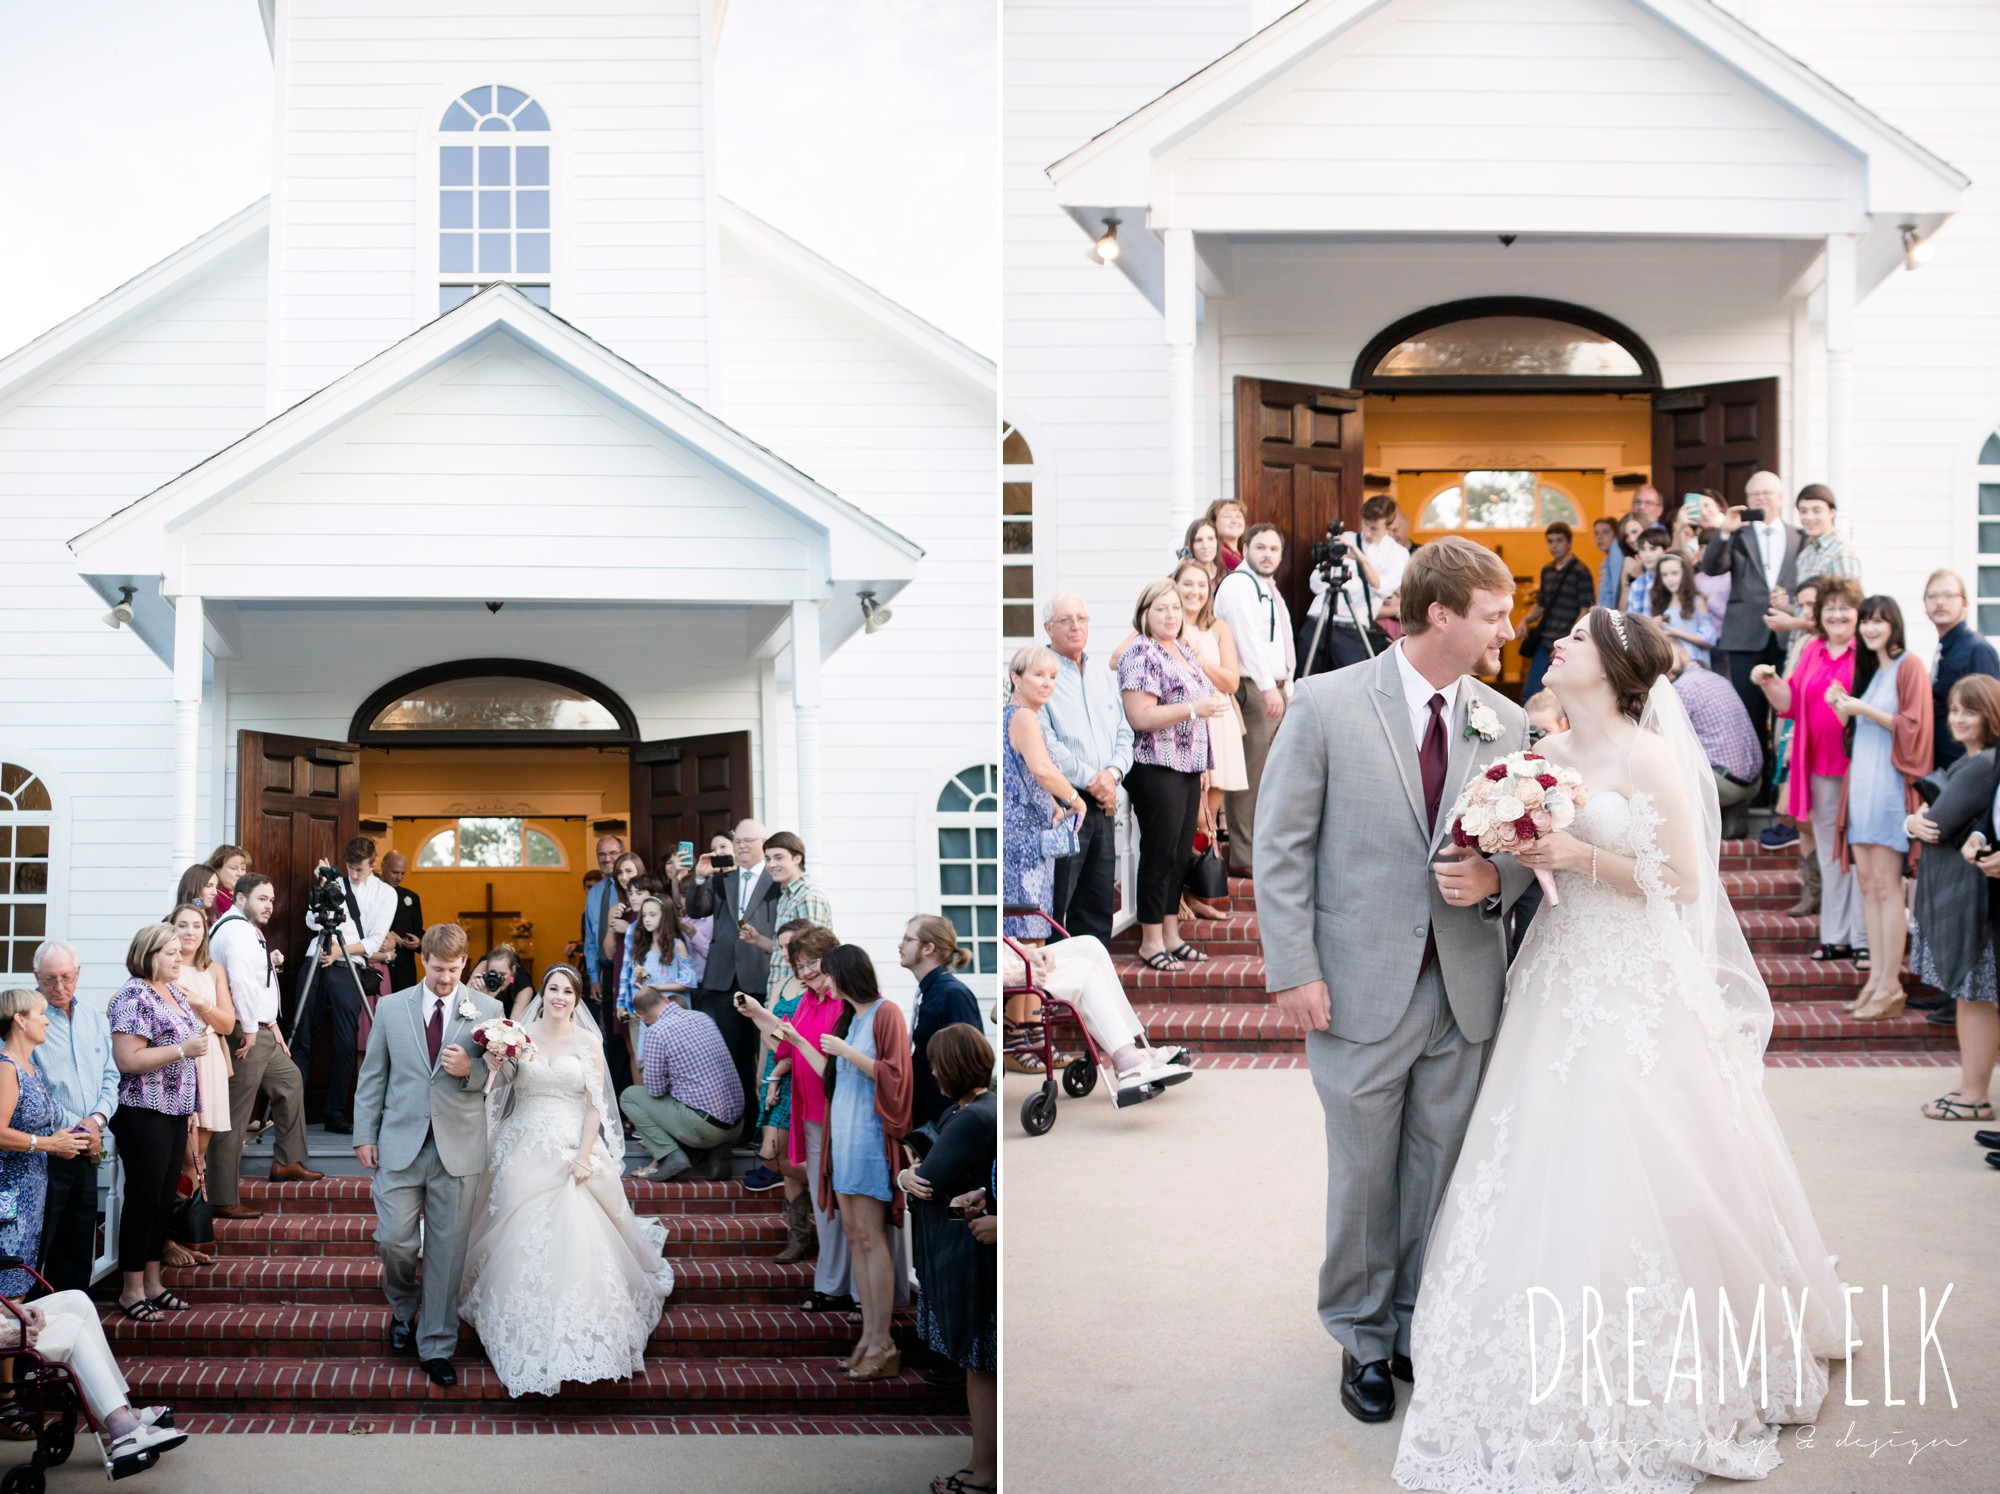 bride, sweetheart lace ballgown wedding dress, oyester underlay, lace trimmed veil, rhinestone headpiece, september wedding photo, ashelynn manor, magnolia, texas, austin texas wedding photographer {dreamy elk photography and design}